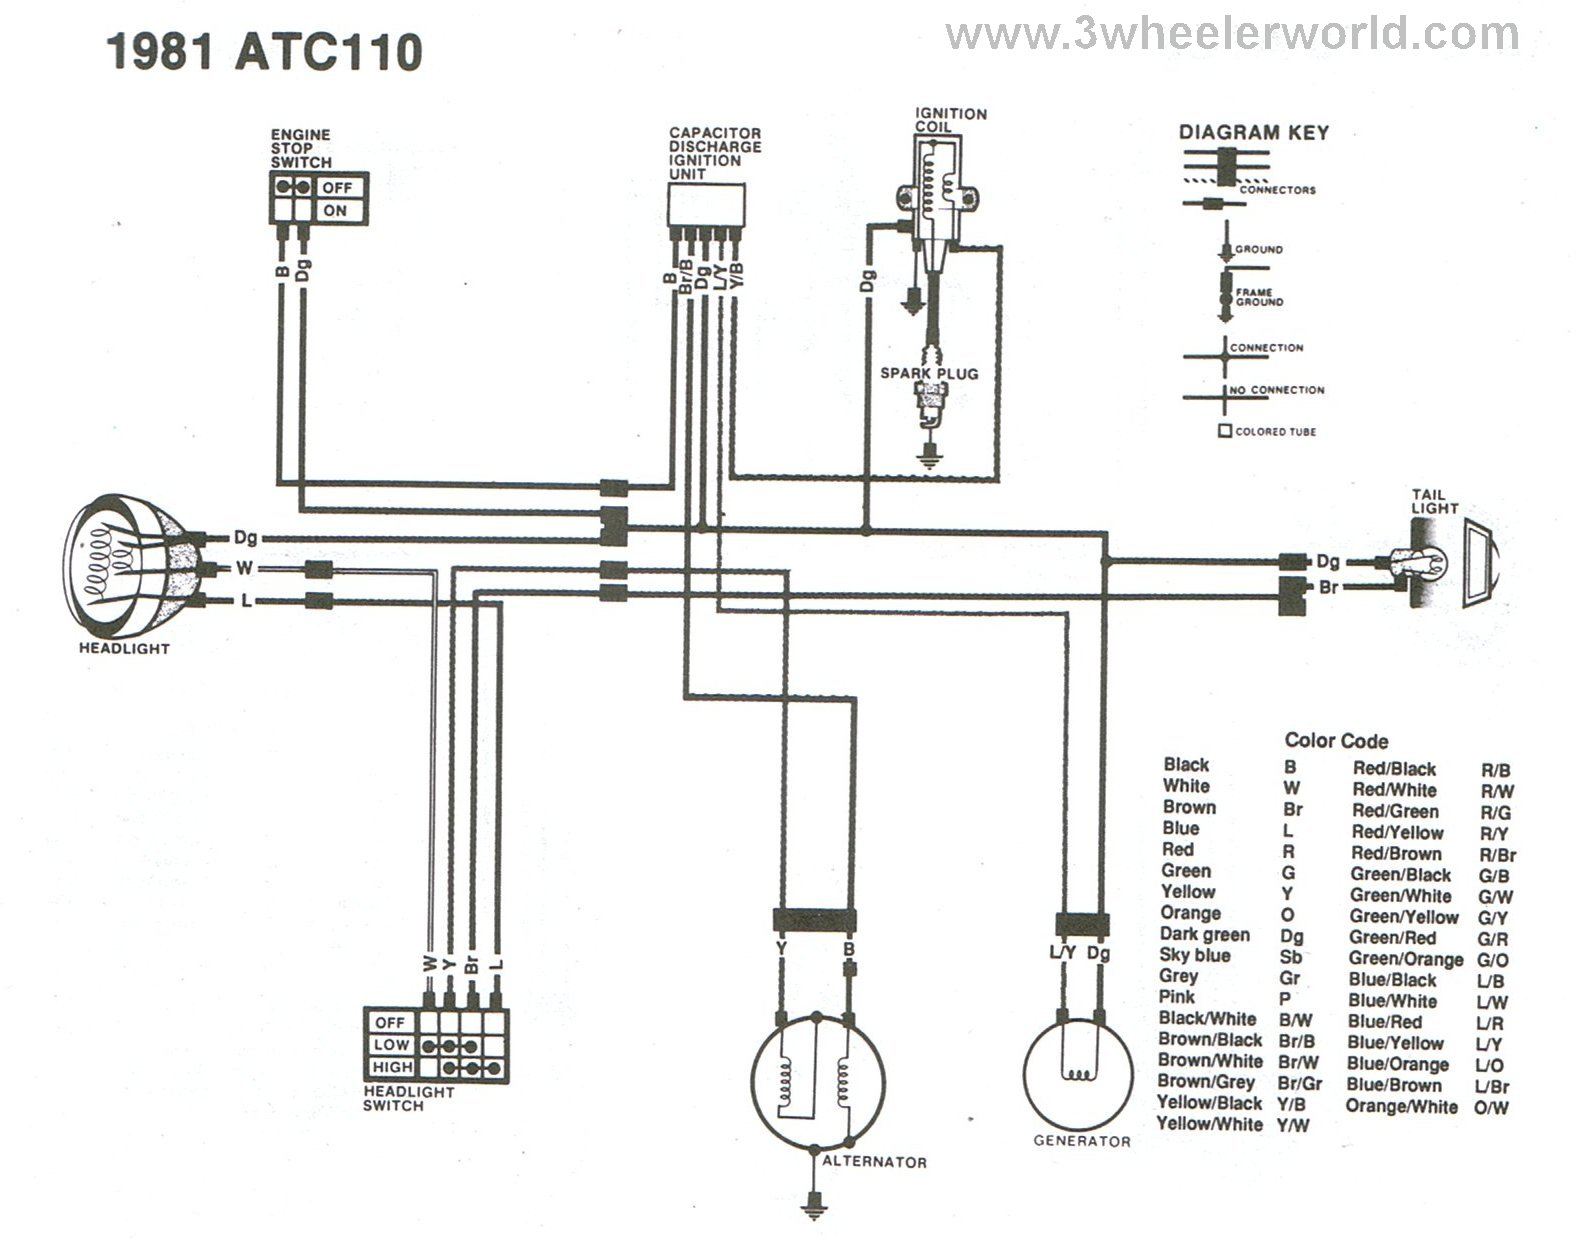 ATC110x81 3 wheeler world tech help honda wiring diagrams honda xrm 110 engine wiring diagram at readyjetset.co